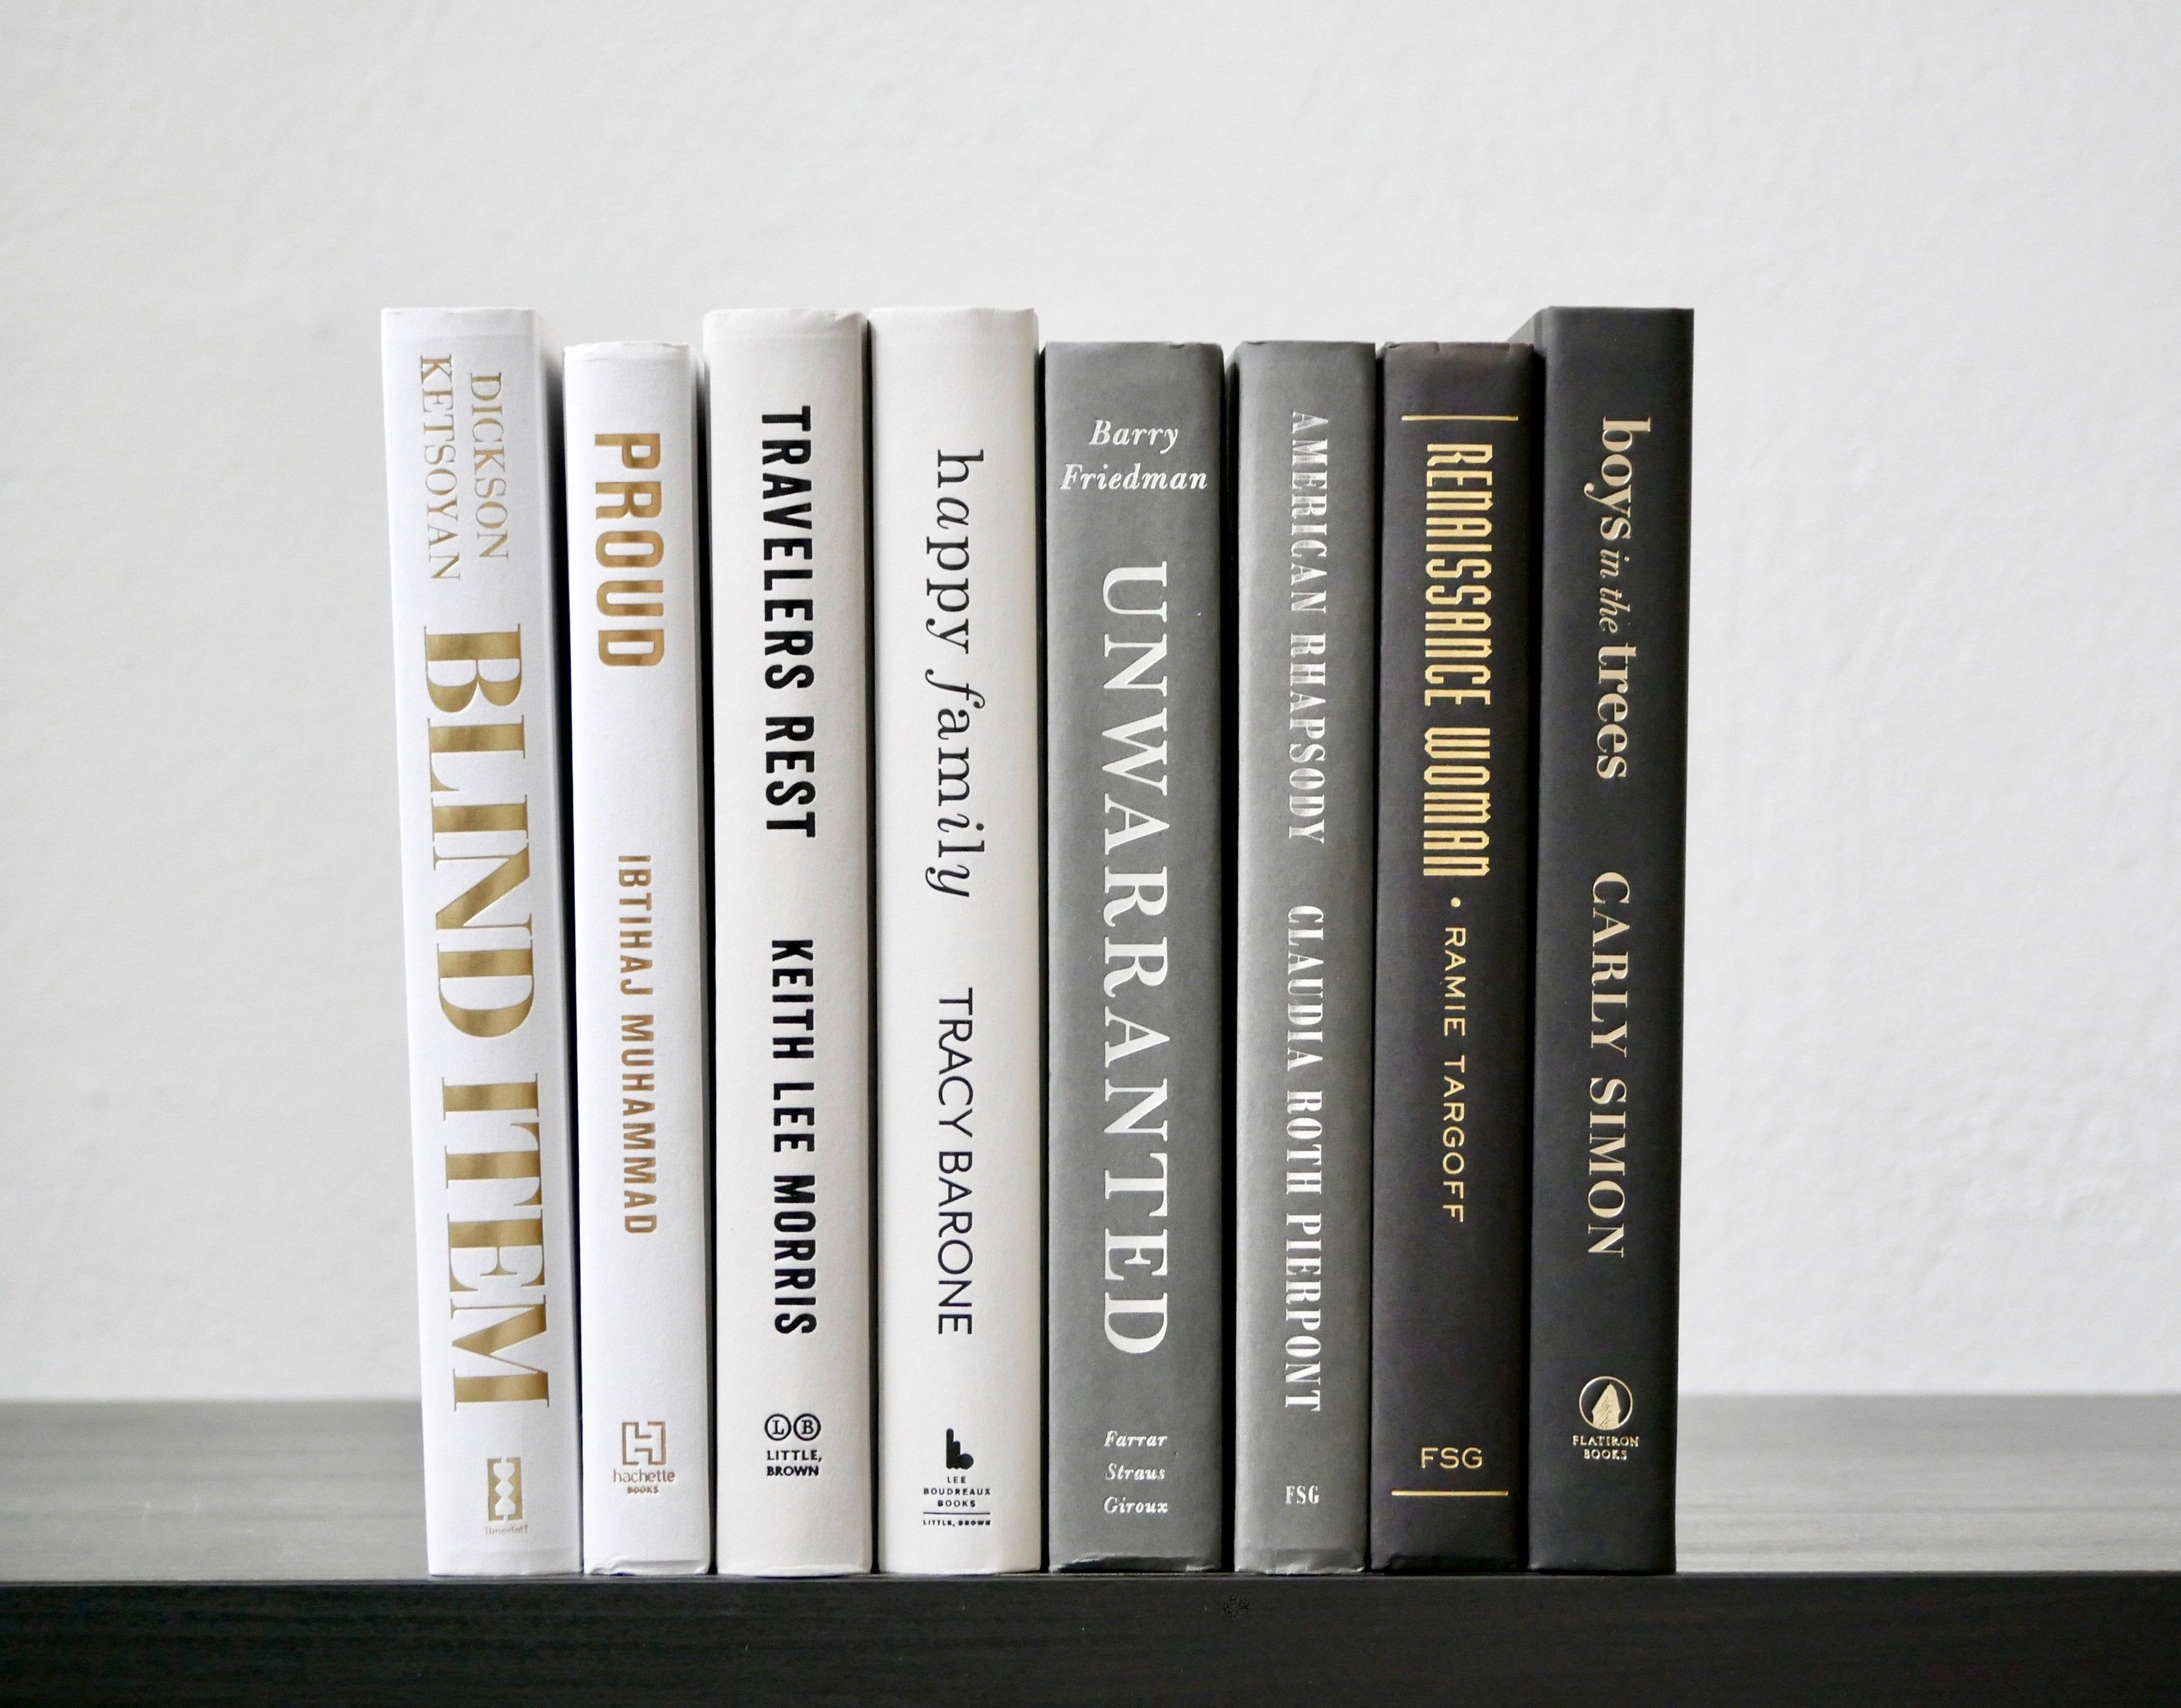 Bundle Of White Gray And Black Decorative Books Ombre Book Stack Book Set Books For Decoration Shelf Decor Display Books Book Decor In 2020 Book Decor Shelf Decor Black And White Books